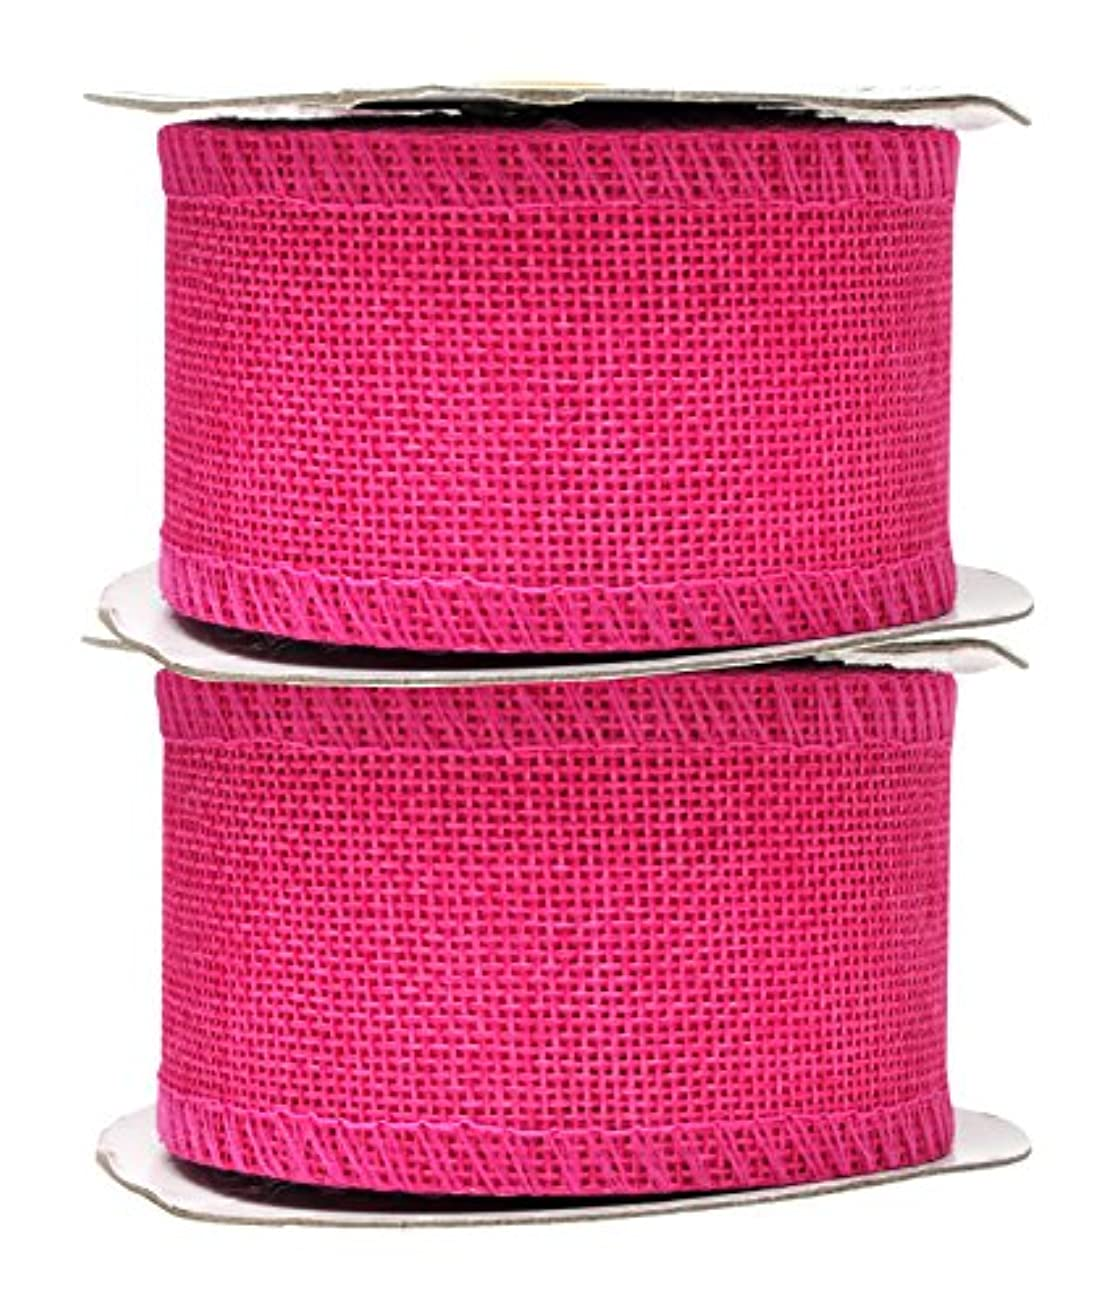 Mandala Crafts Burlap Ribbon, Jute Fabric Strip Spool for Rustic Ornament, Wreath Making, Holiday Decorating, Gift Wrapping (Hot Pink, 2 Inches)